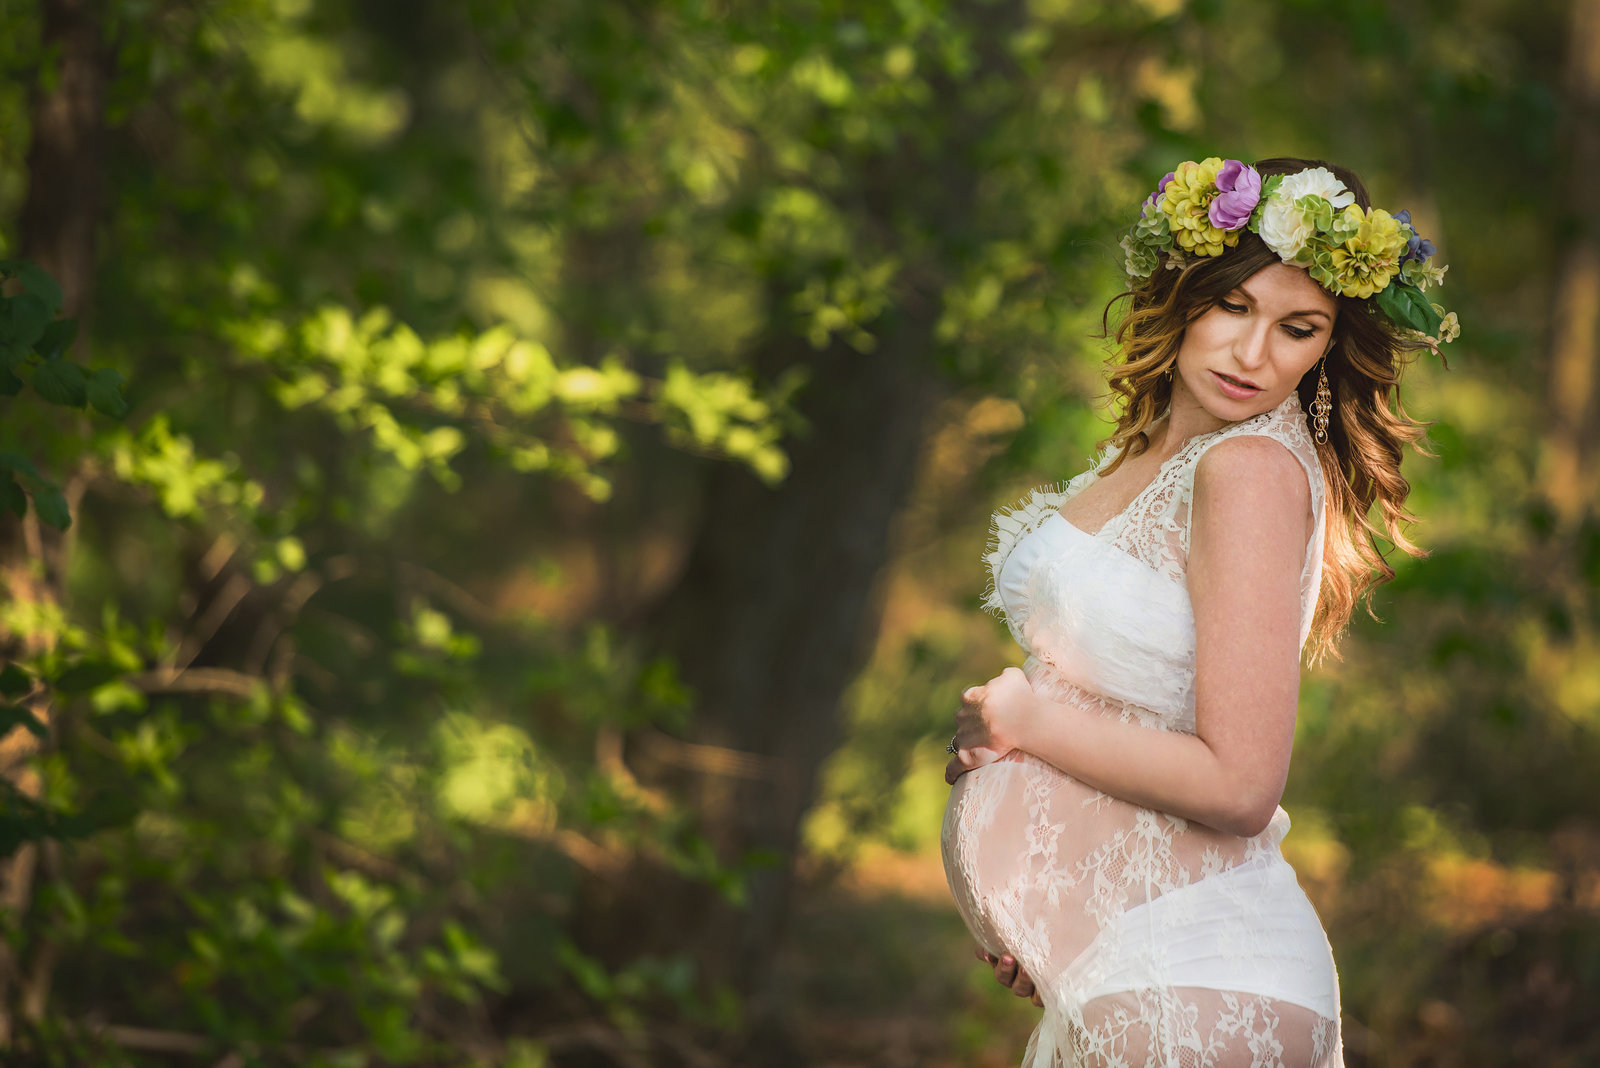 Glamour, Boudoir, Pregnancy, floral crown, lace gown,